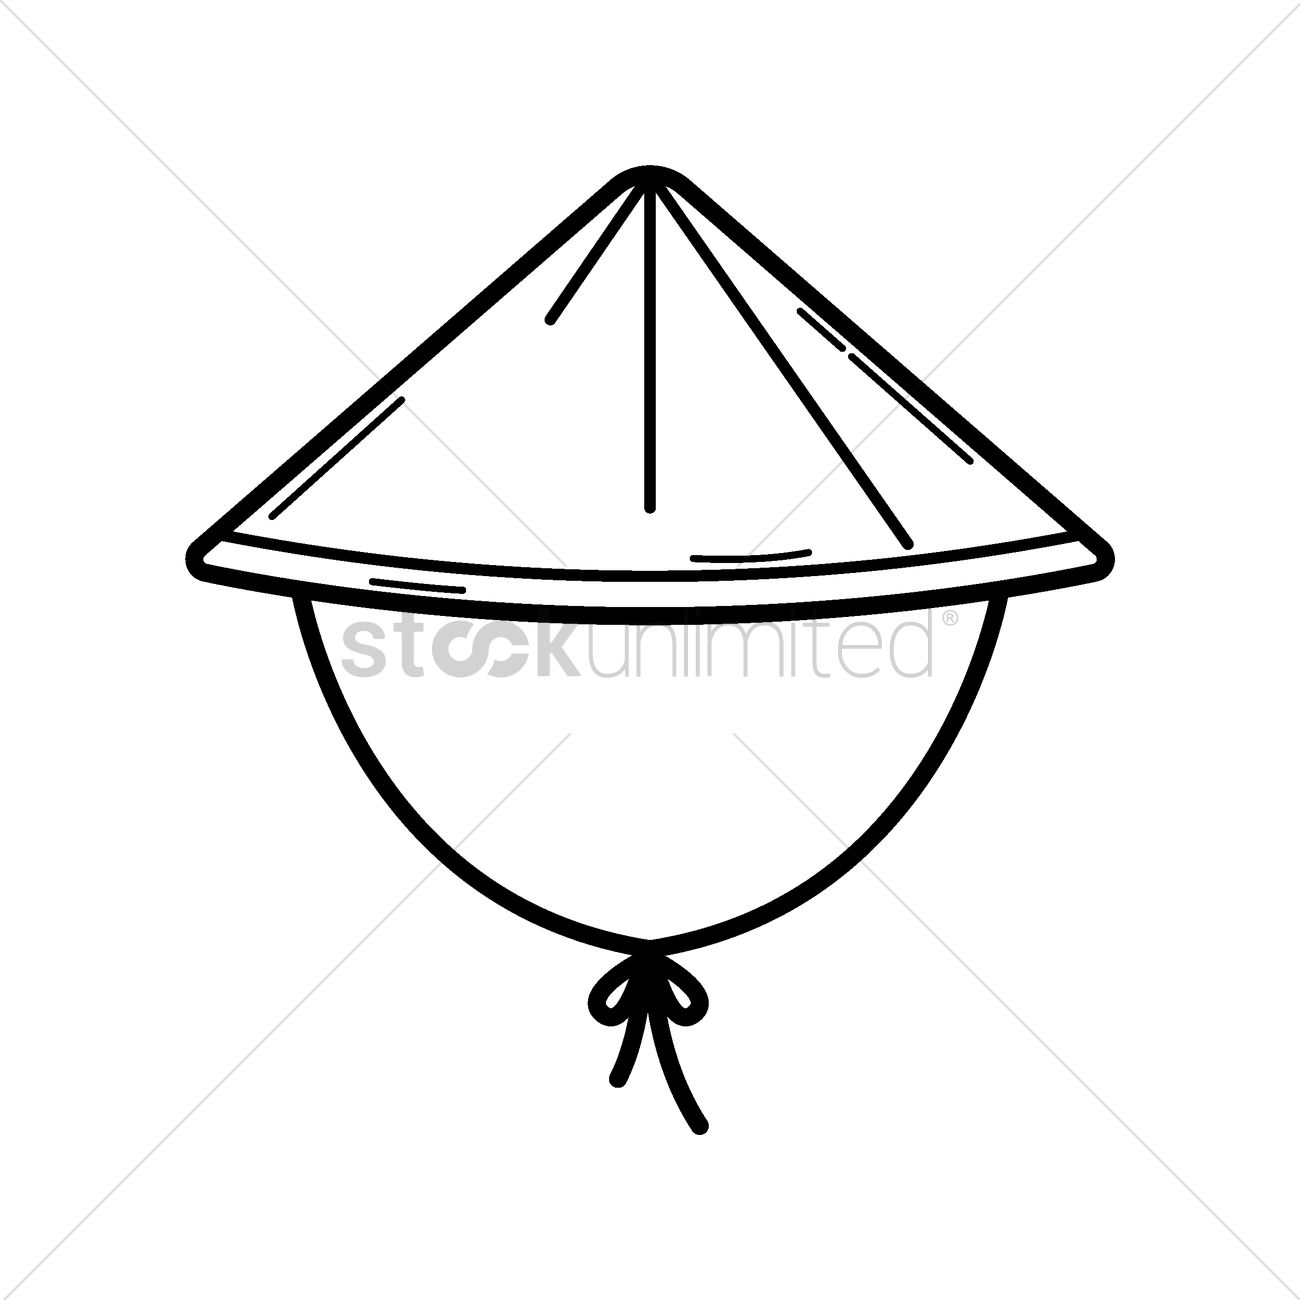 Bamboo Hat Vector Image